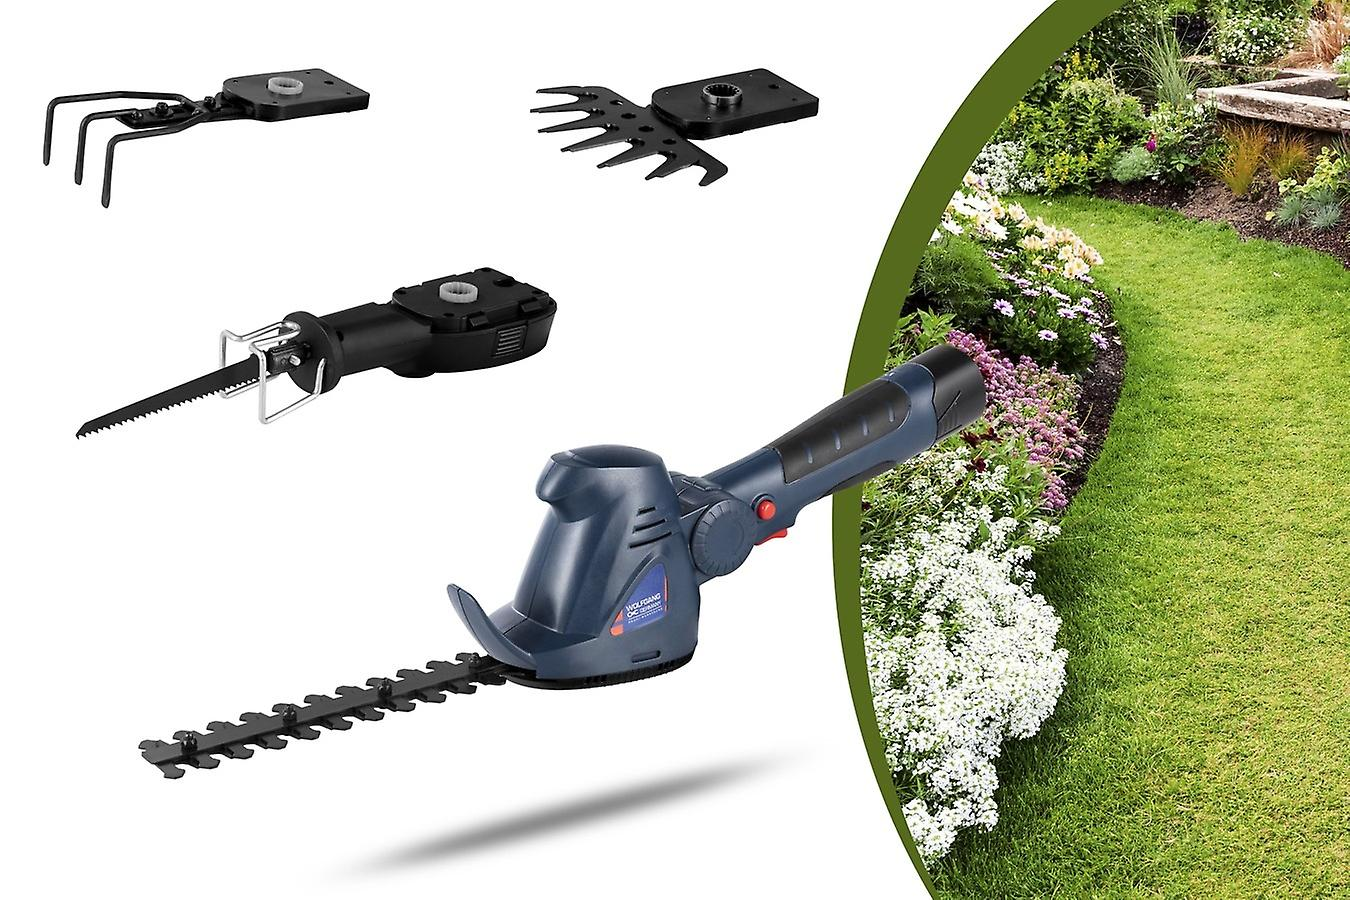 WOLFGANG 4 in 1 Multifunctional Garden Device, Jigsaw Grass Scissors Hedge Trimmer Cultivator, Wireless with Battery, Li-ion 1500mAh 10.8 V